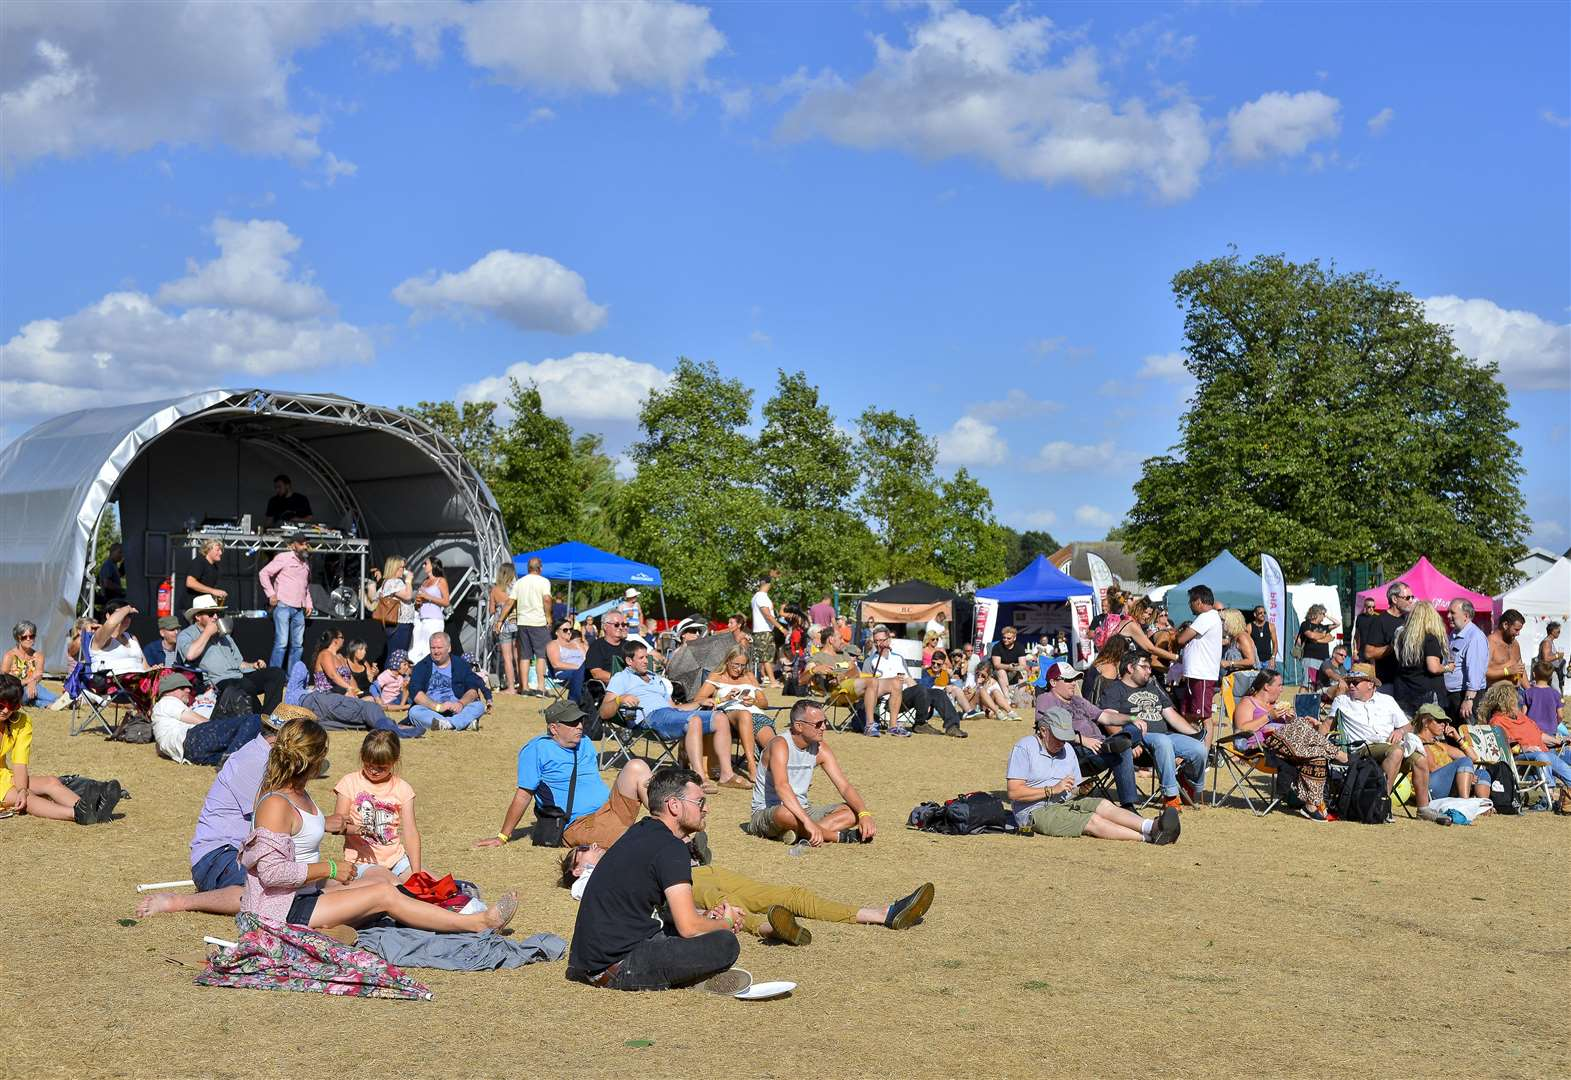 Gig in the Park organiser anxious over event's future